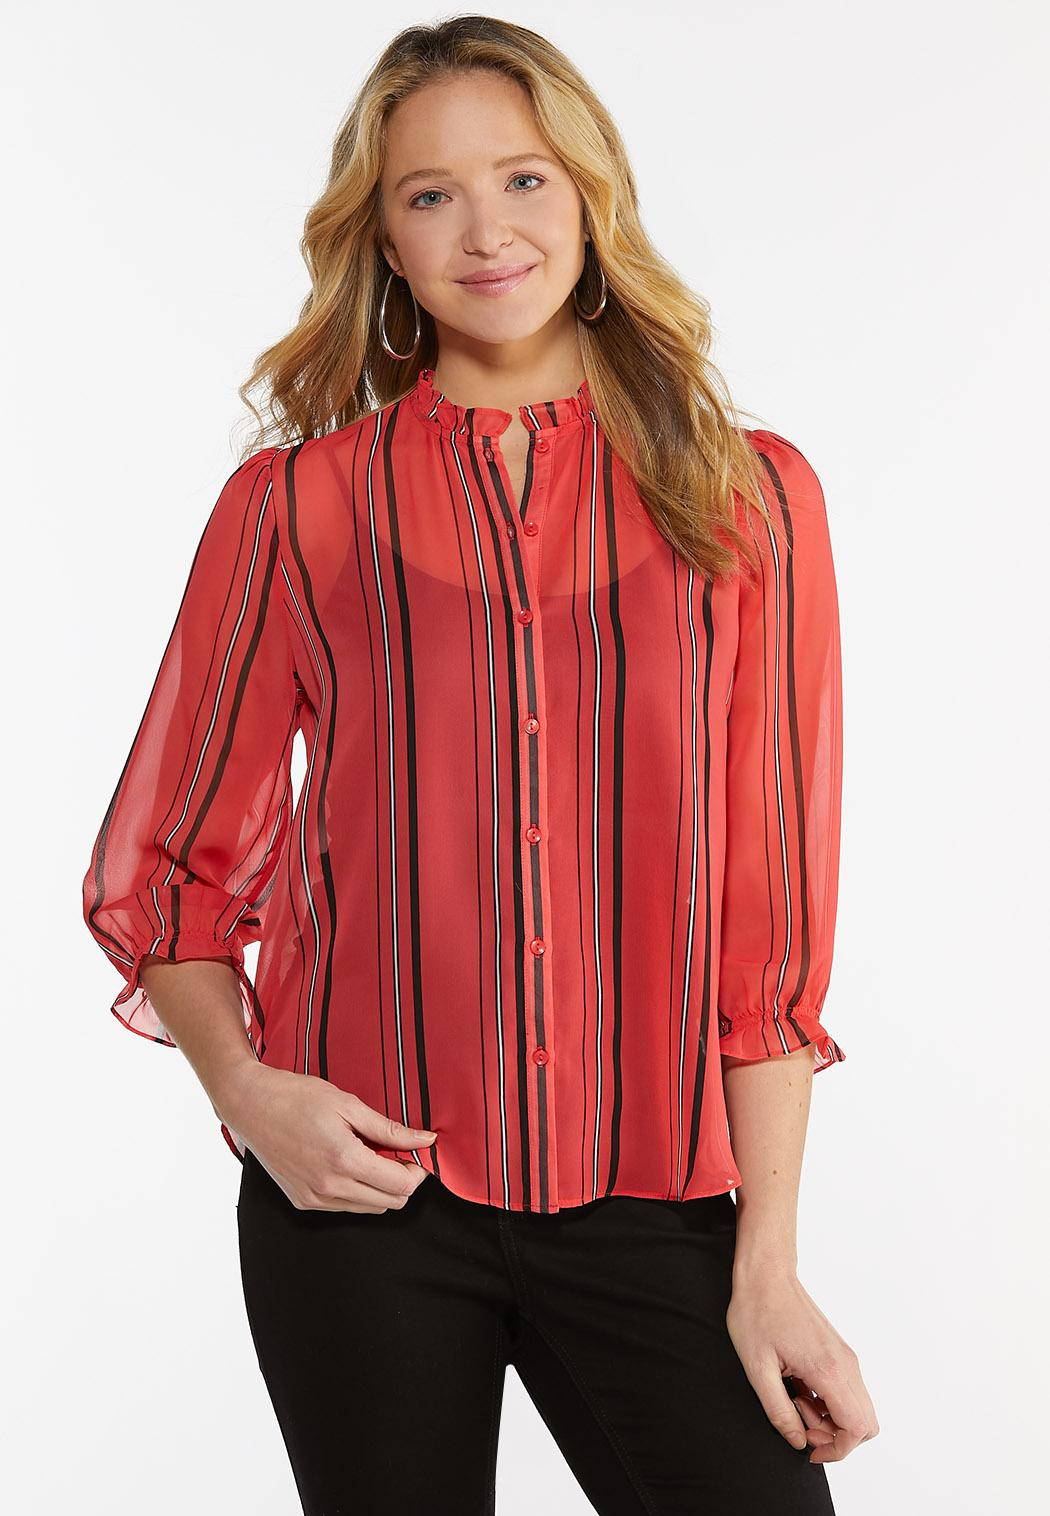 Sheer Striped Top